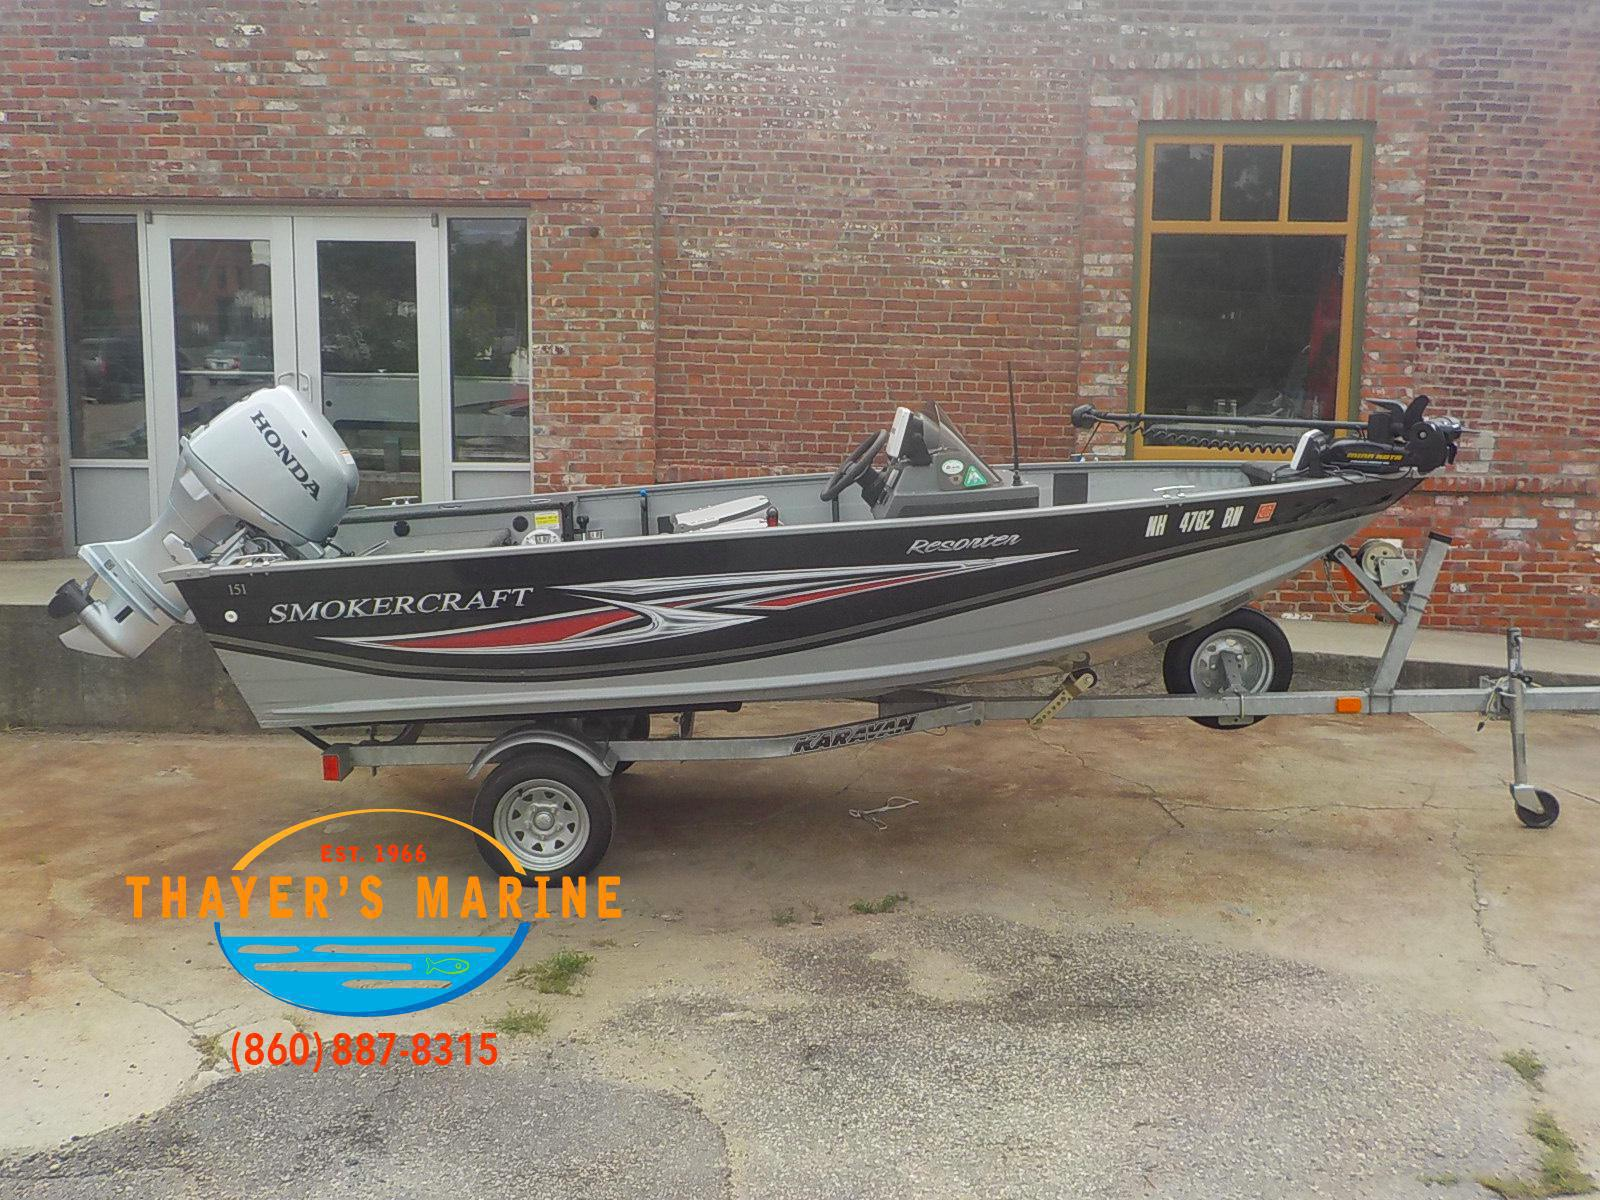 2013 Smoker Craft boat for sale, model of the boat is 151 & Image # 22 of 24